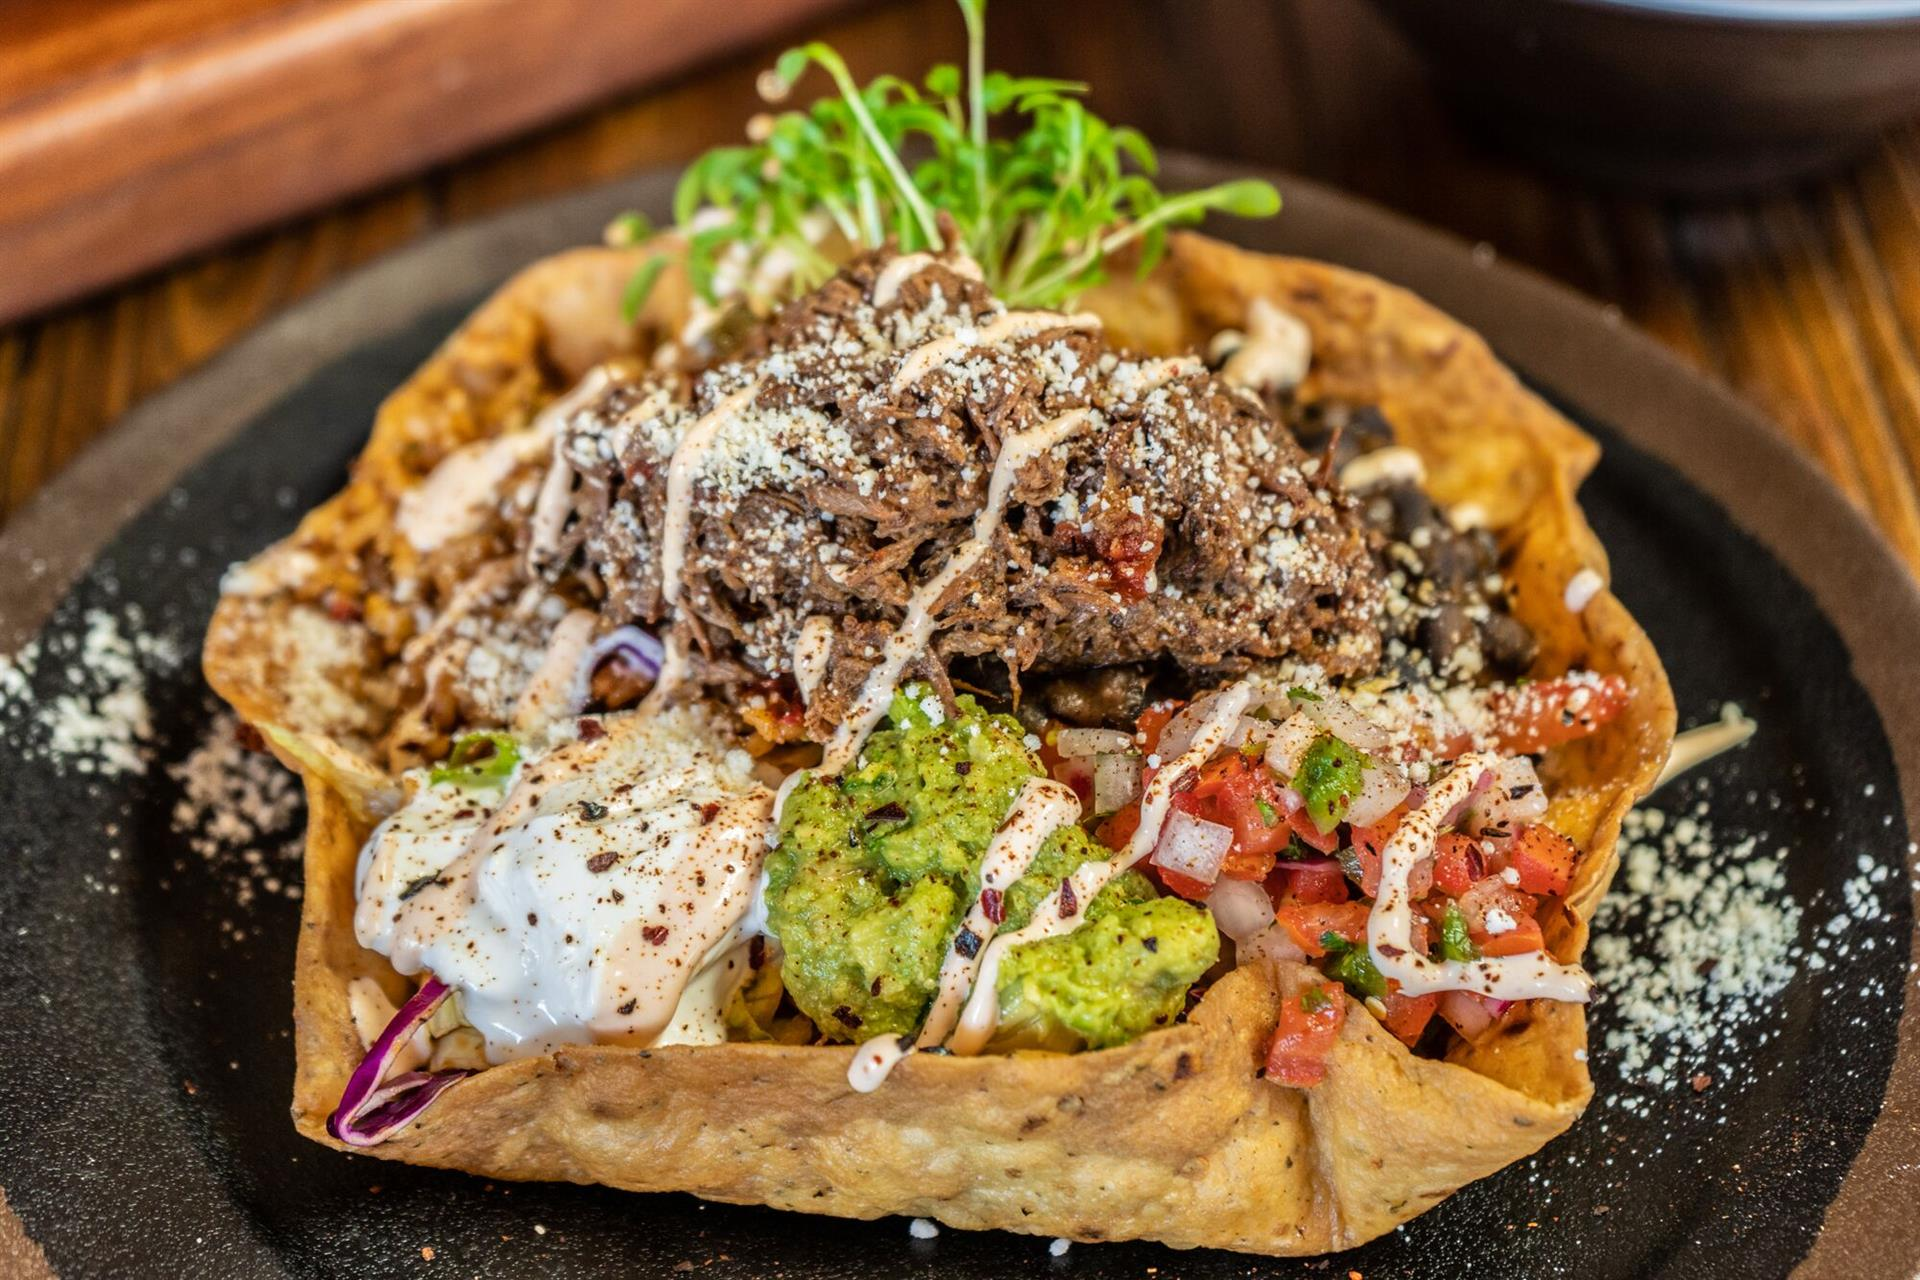 Top shot of Taco salad filled with sourcream, rico de gallo, guacamole, black beans and a choice of meat in a crispy tortilla bowl